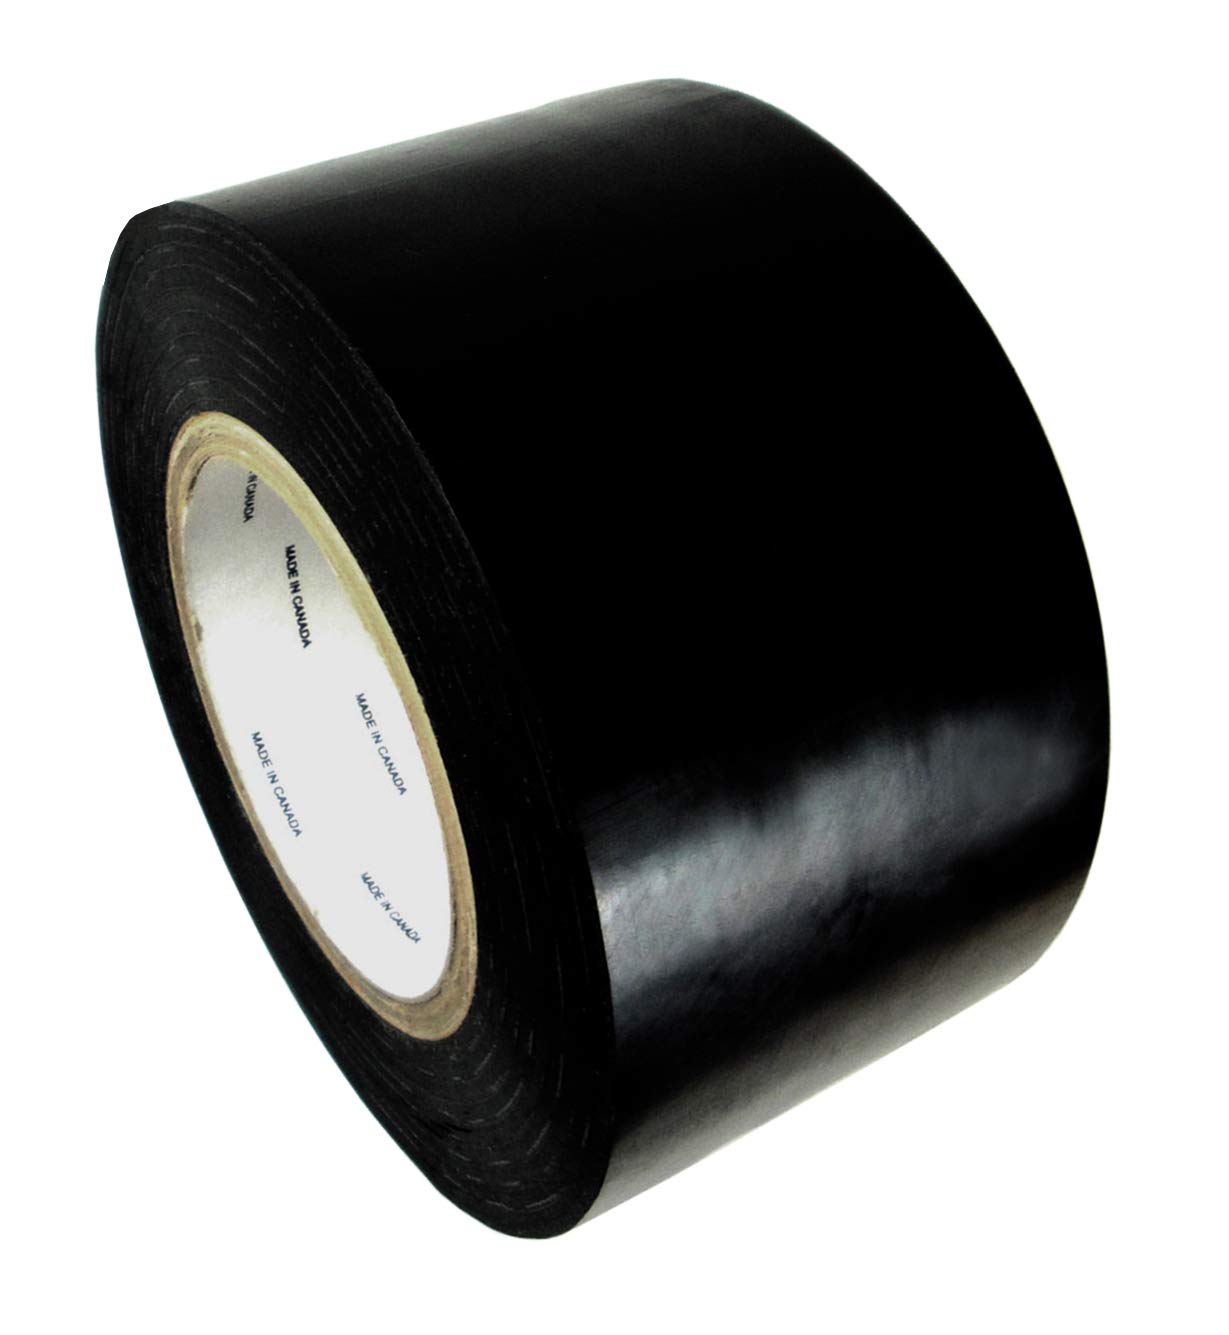 WOD LDPE-5A Greenhouse Repair Tape, Black - 6 inch x 108 ft. - Strong Weatherseal Polyethylene Film Tape Ideal For Sealing & Seaming (Available in Multiple Sizes)